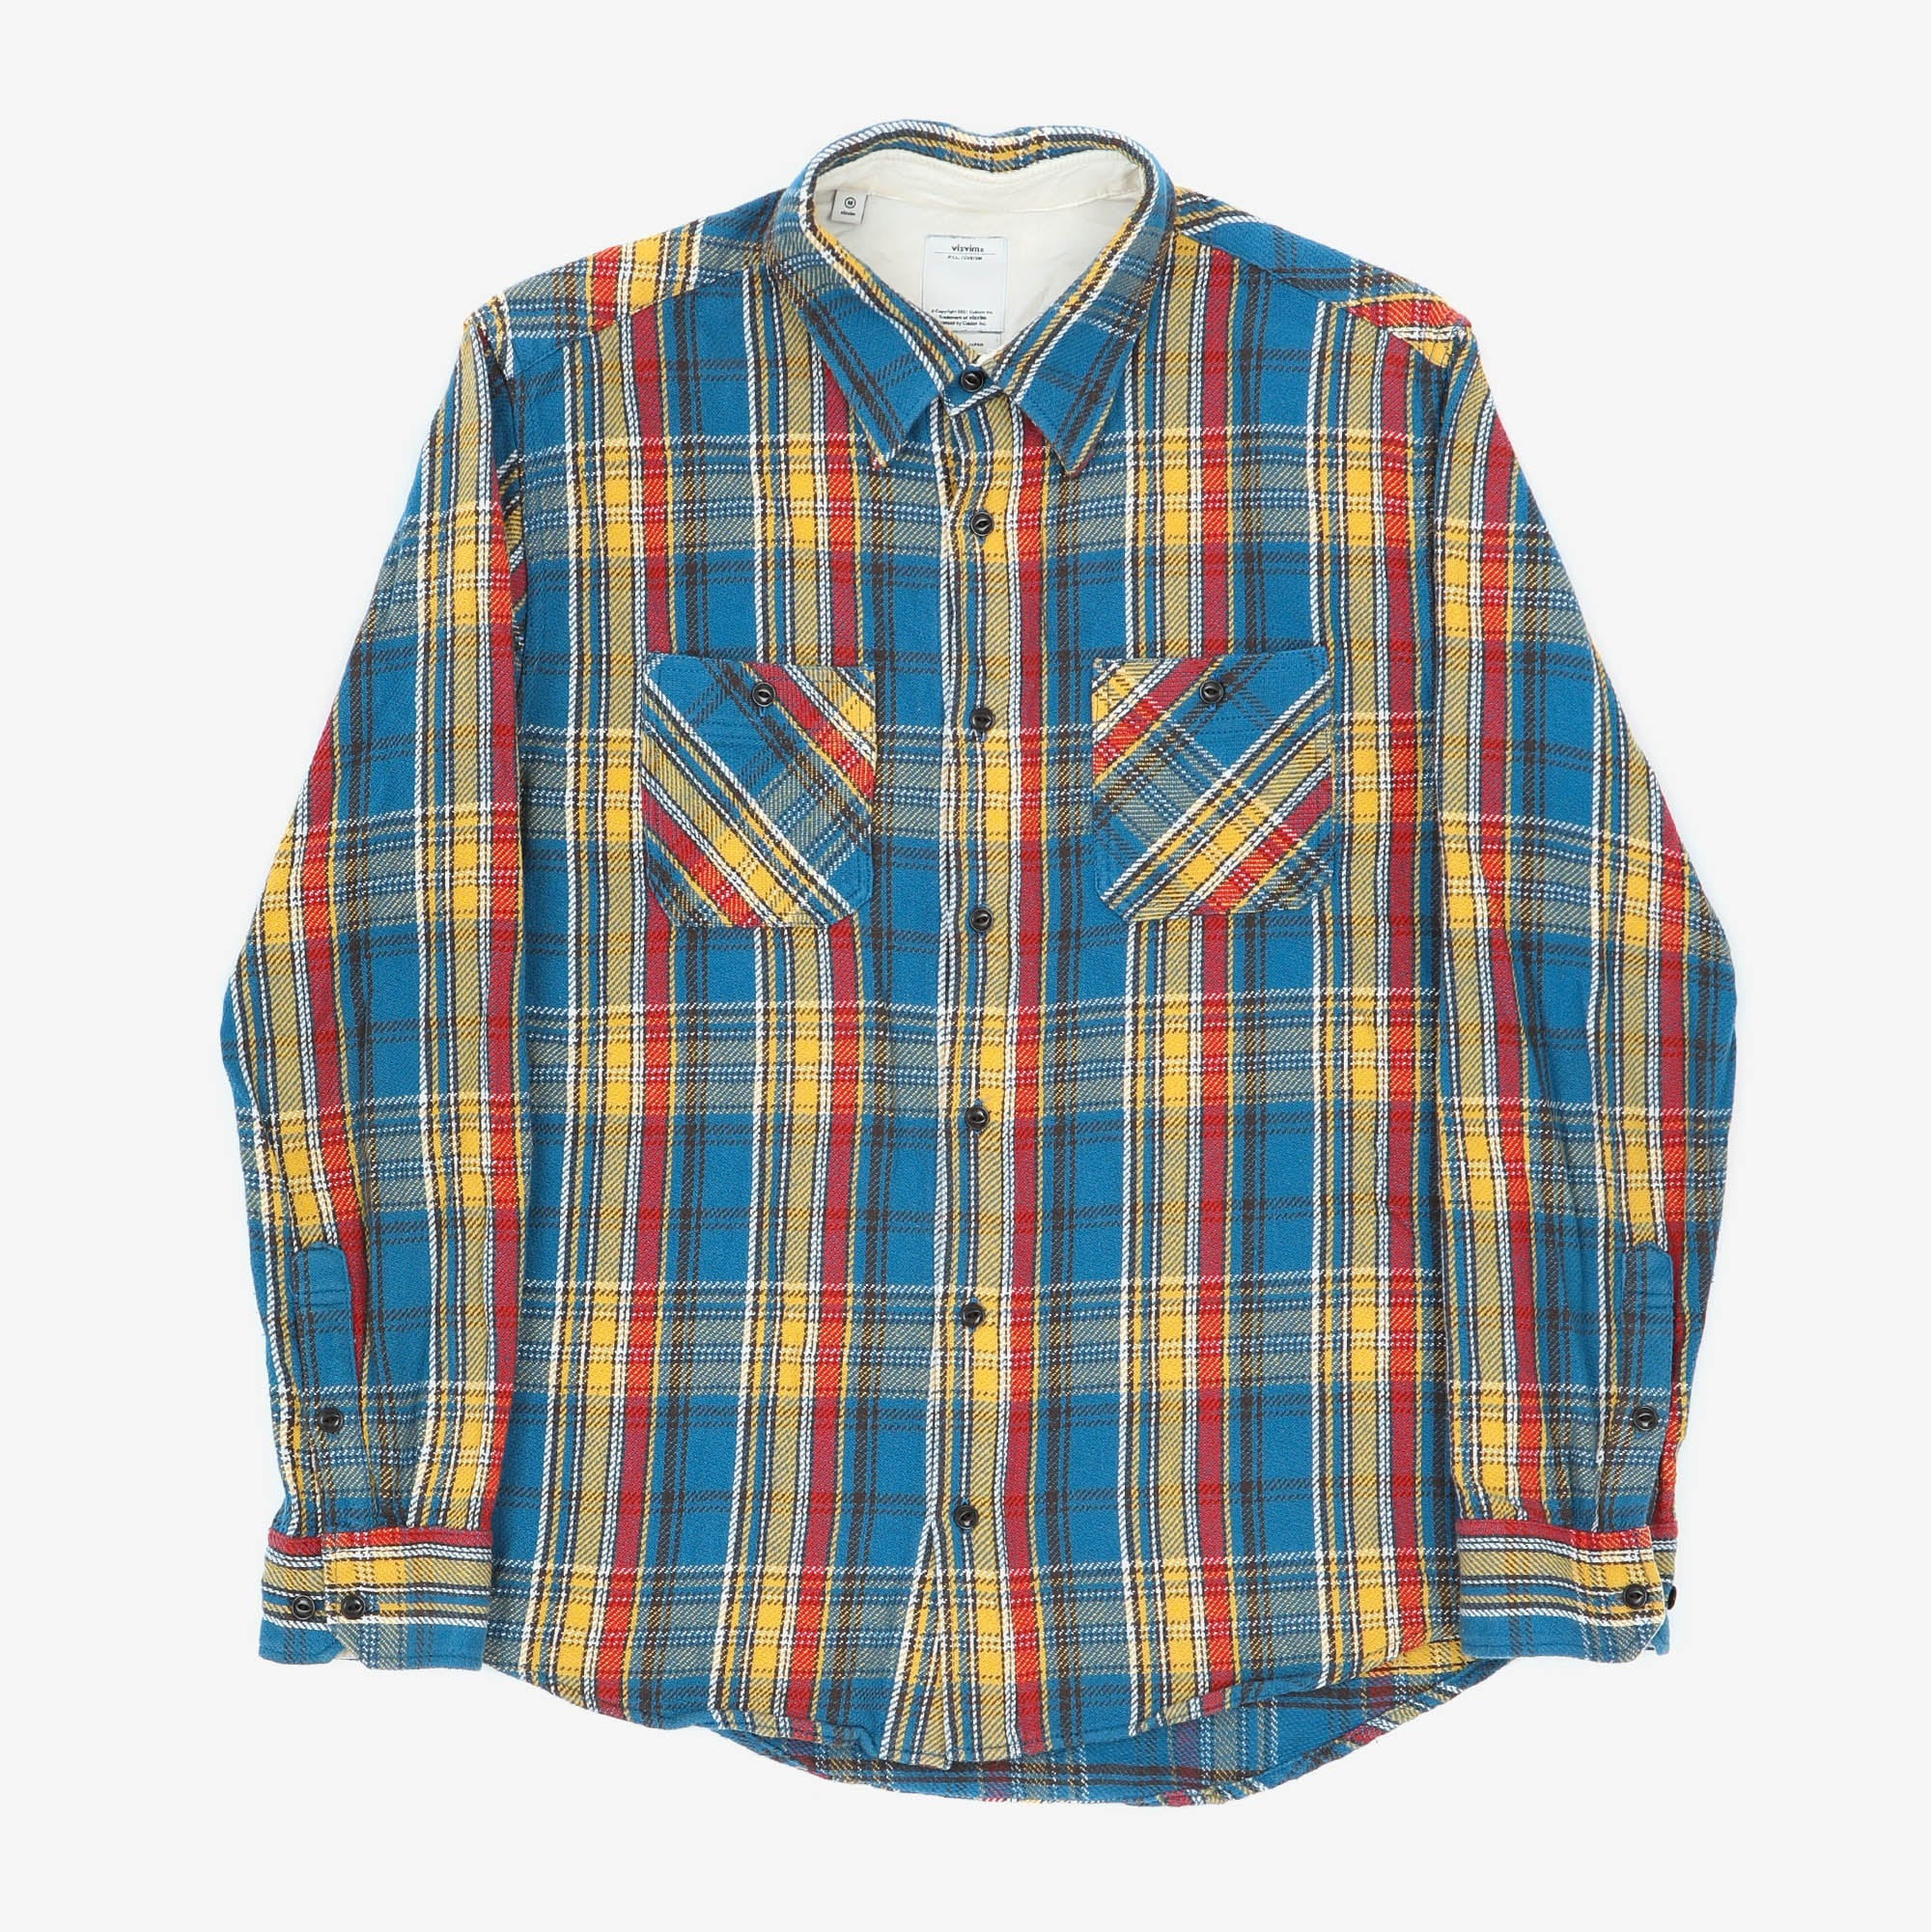 Handyman Check Work Shirt